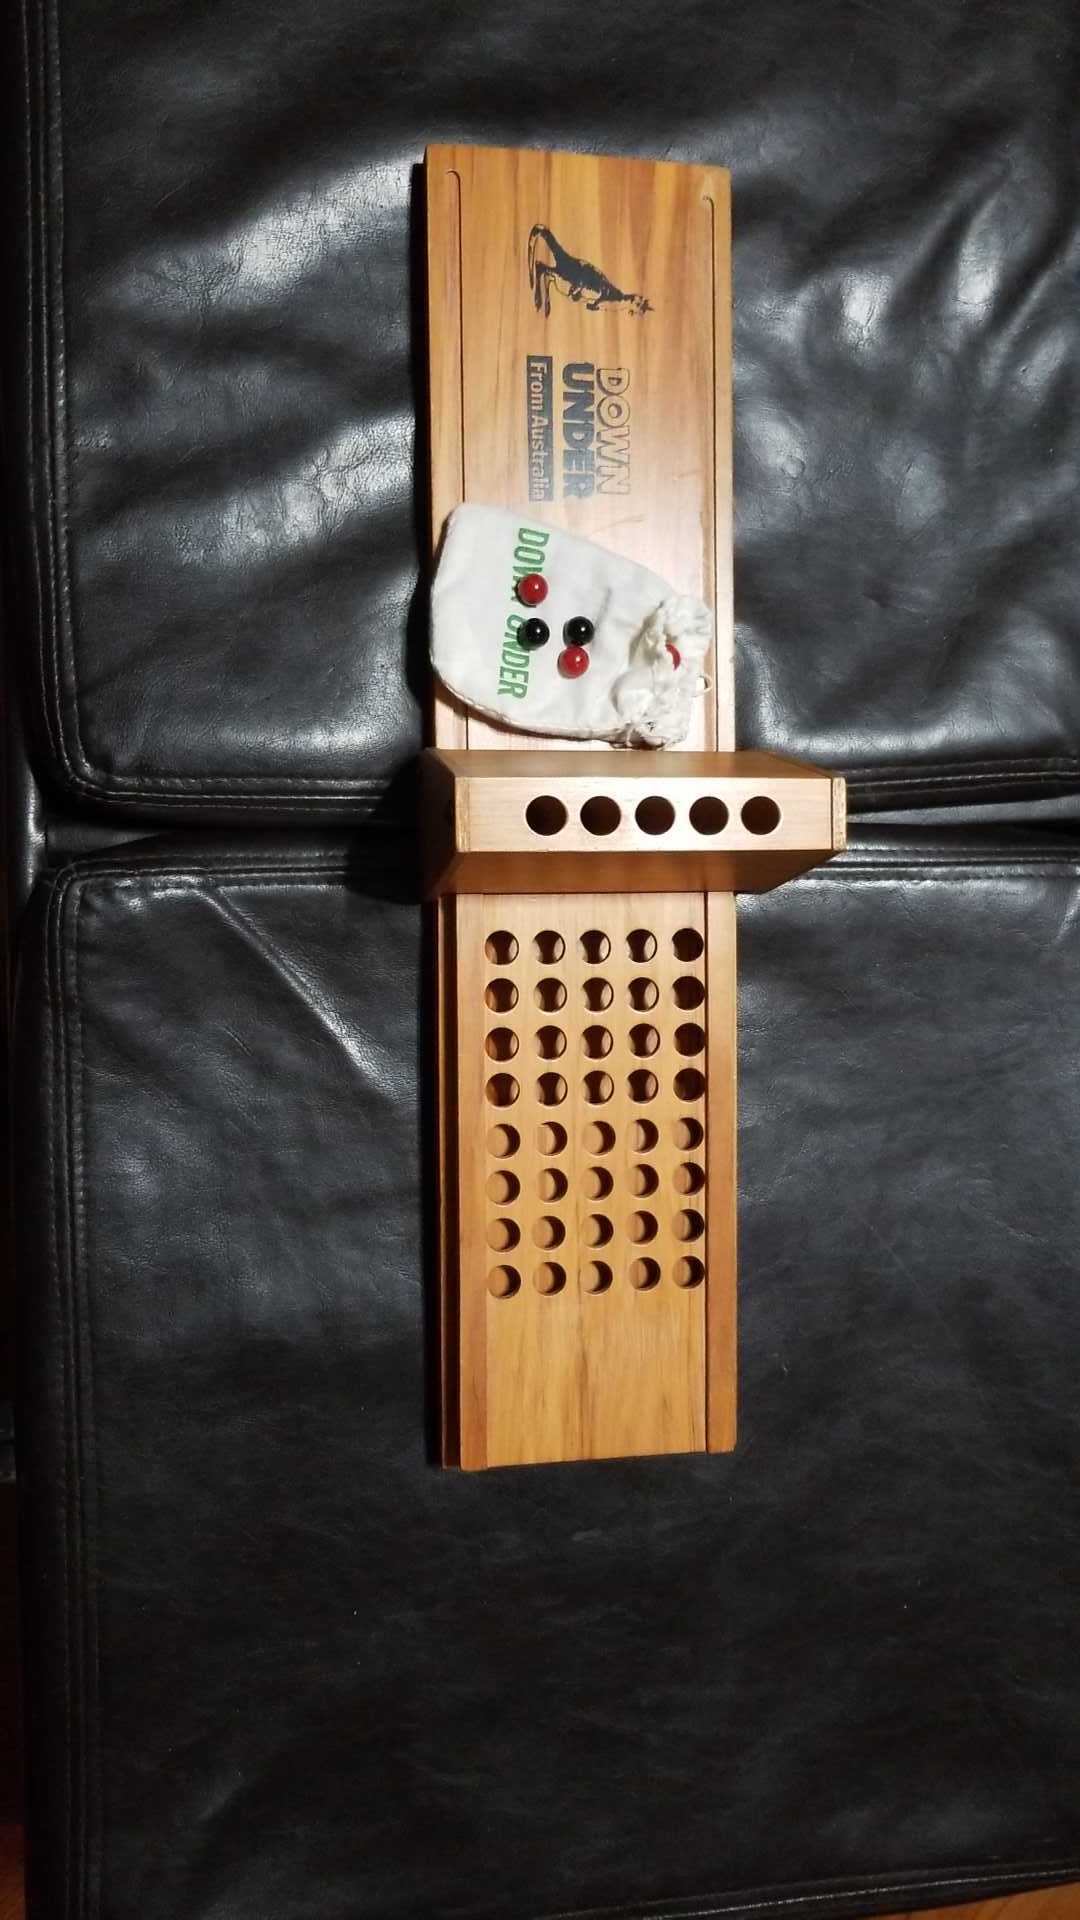 Australian pub game with marbles. Like harder Connect 4.